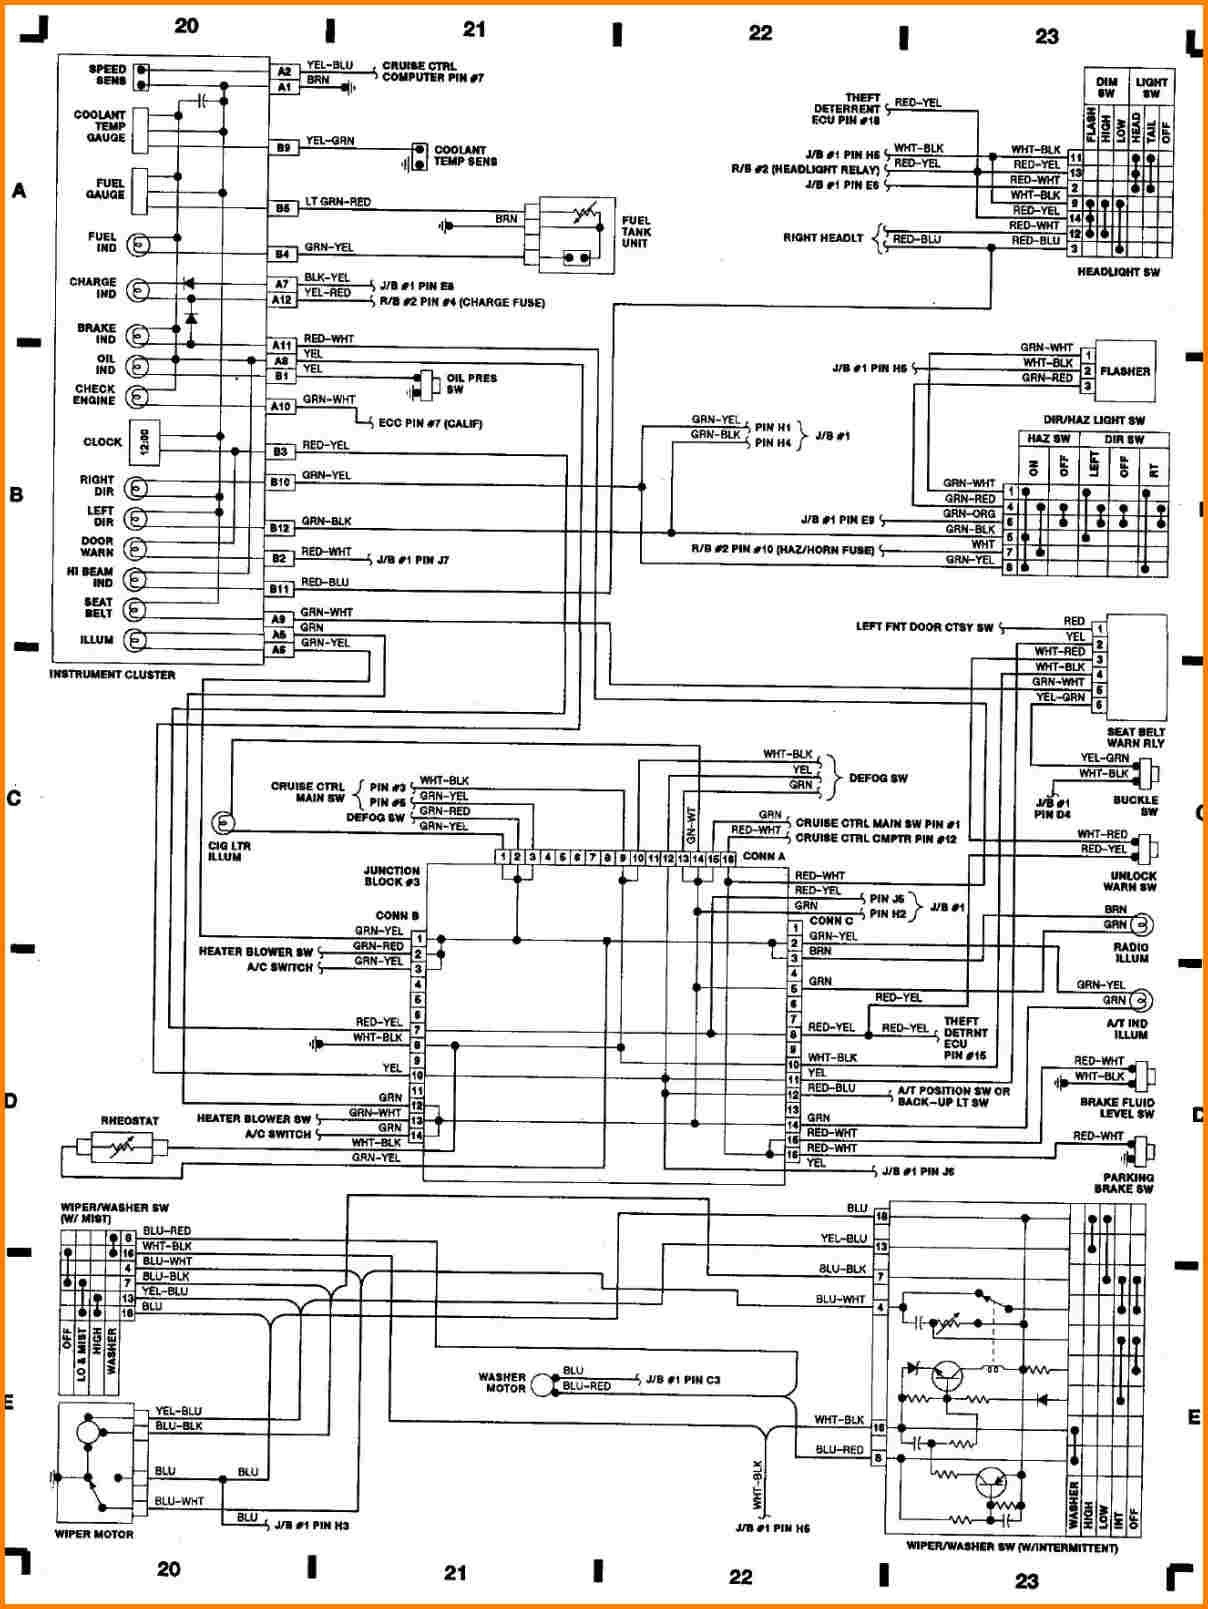 2000 toyota corolla engine diagram diagram  2005 toyota tundra radio wiring diagram full version hd  2005 toyota tundra radio wiring diagram